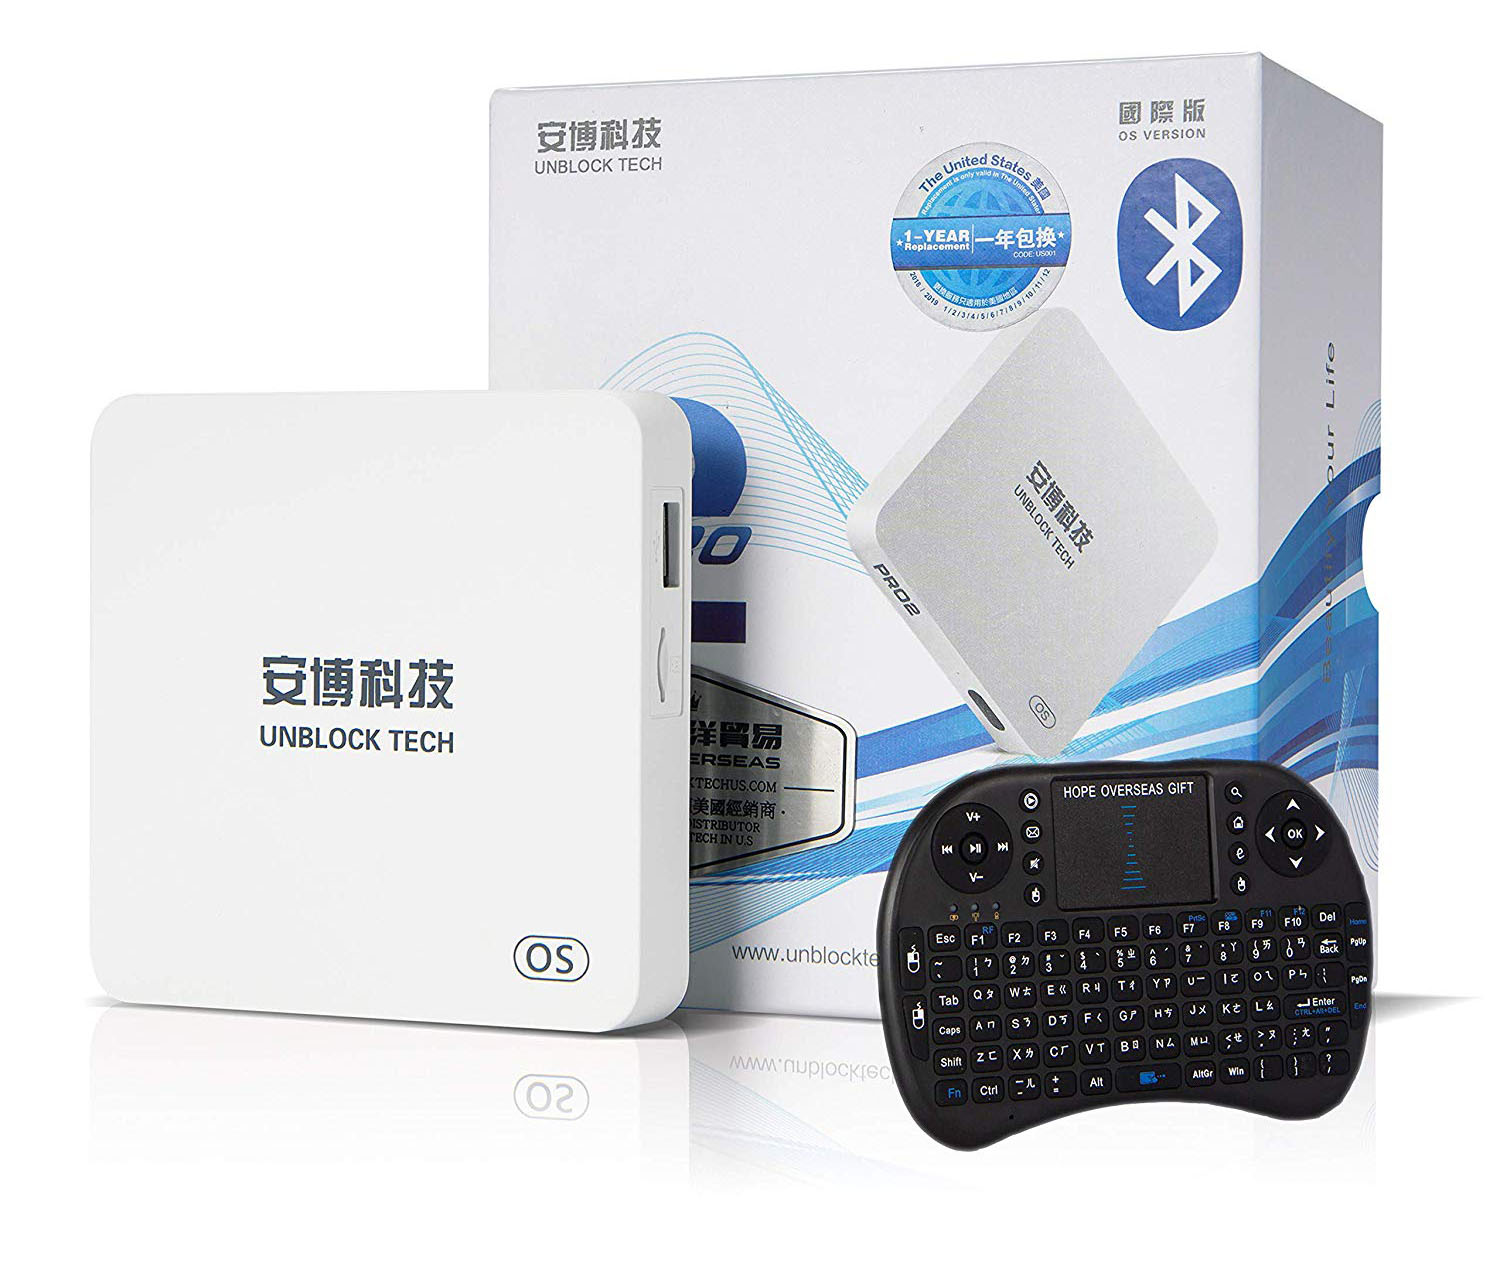 HOPE OVERSEAS 2019 unblock tech Model UBOX PRO2 i950 US Licensed Jailbreak Version Box Contain Surprise Accessories with World Wide Certification